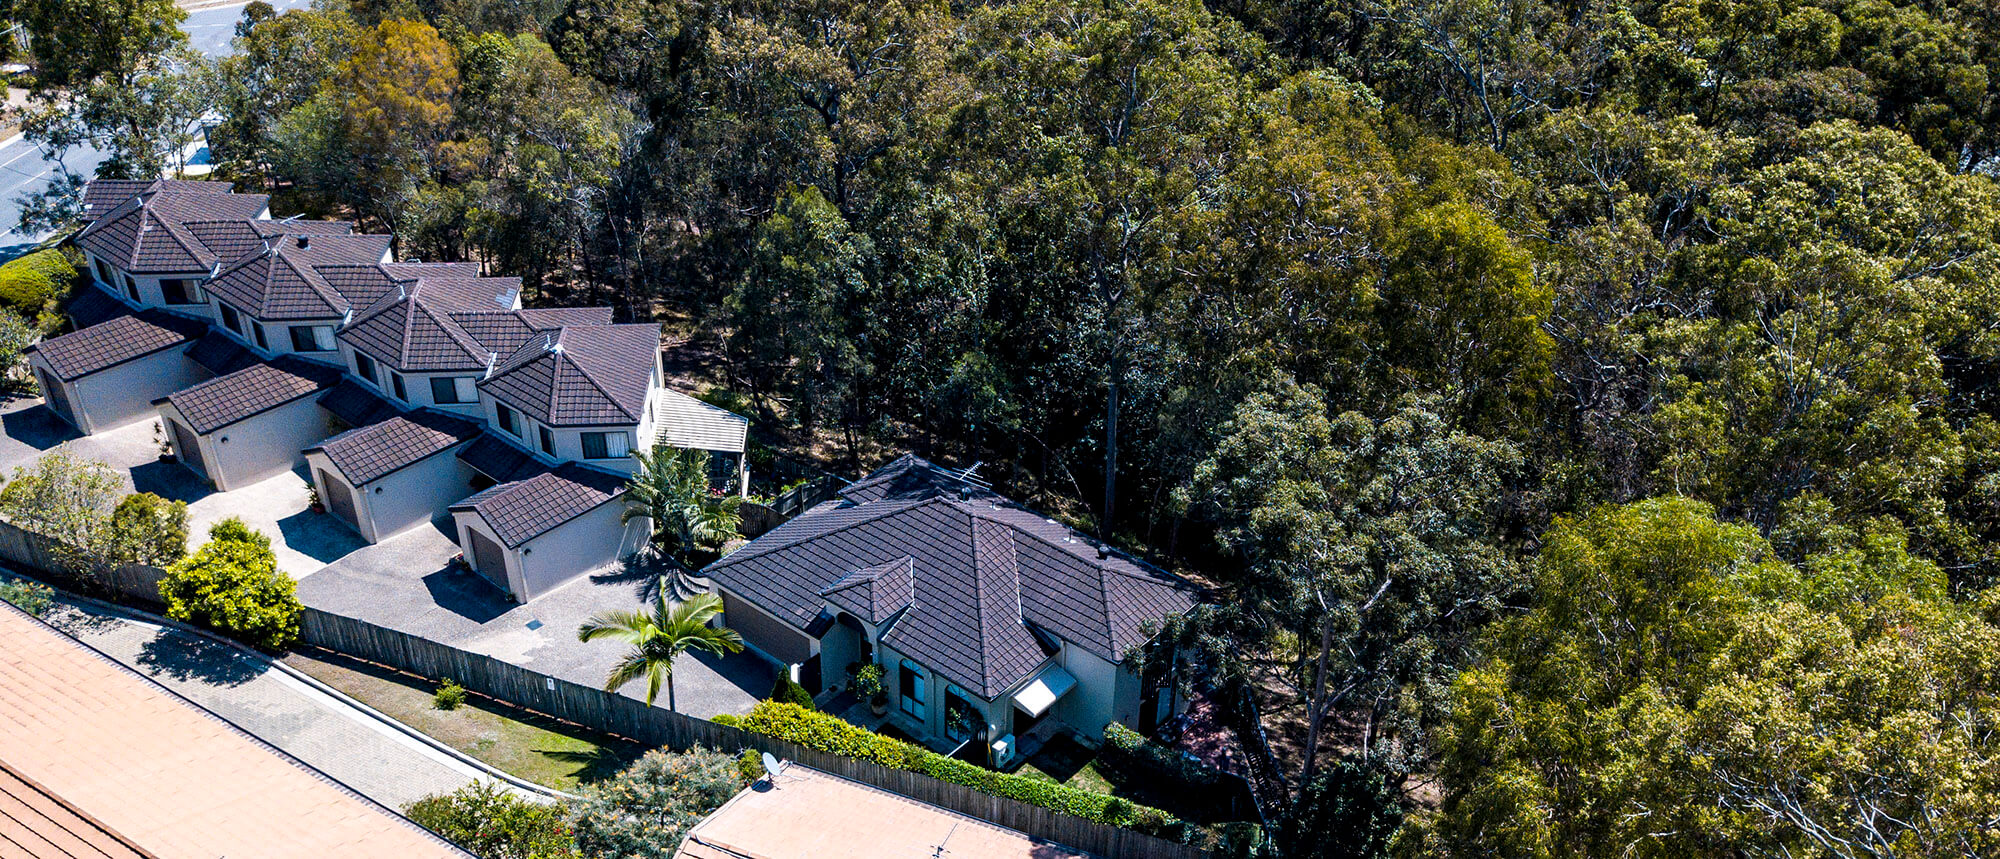 Professional aerial and ground photography services